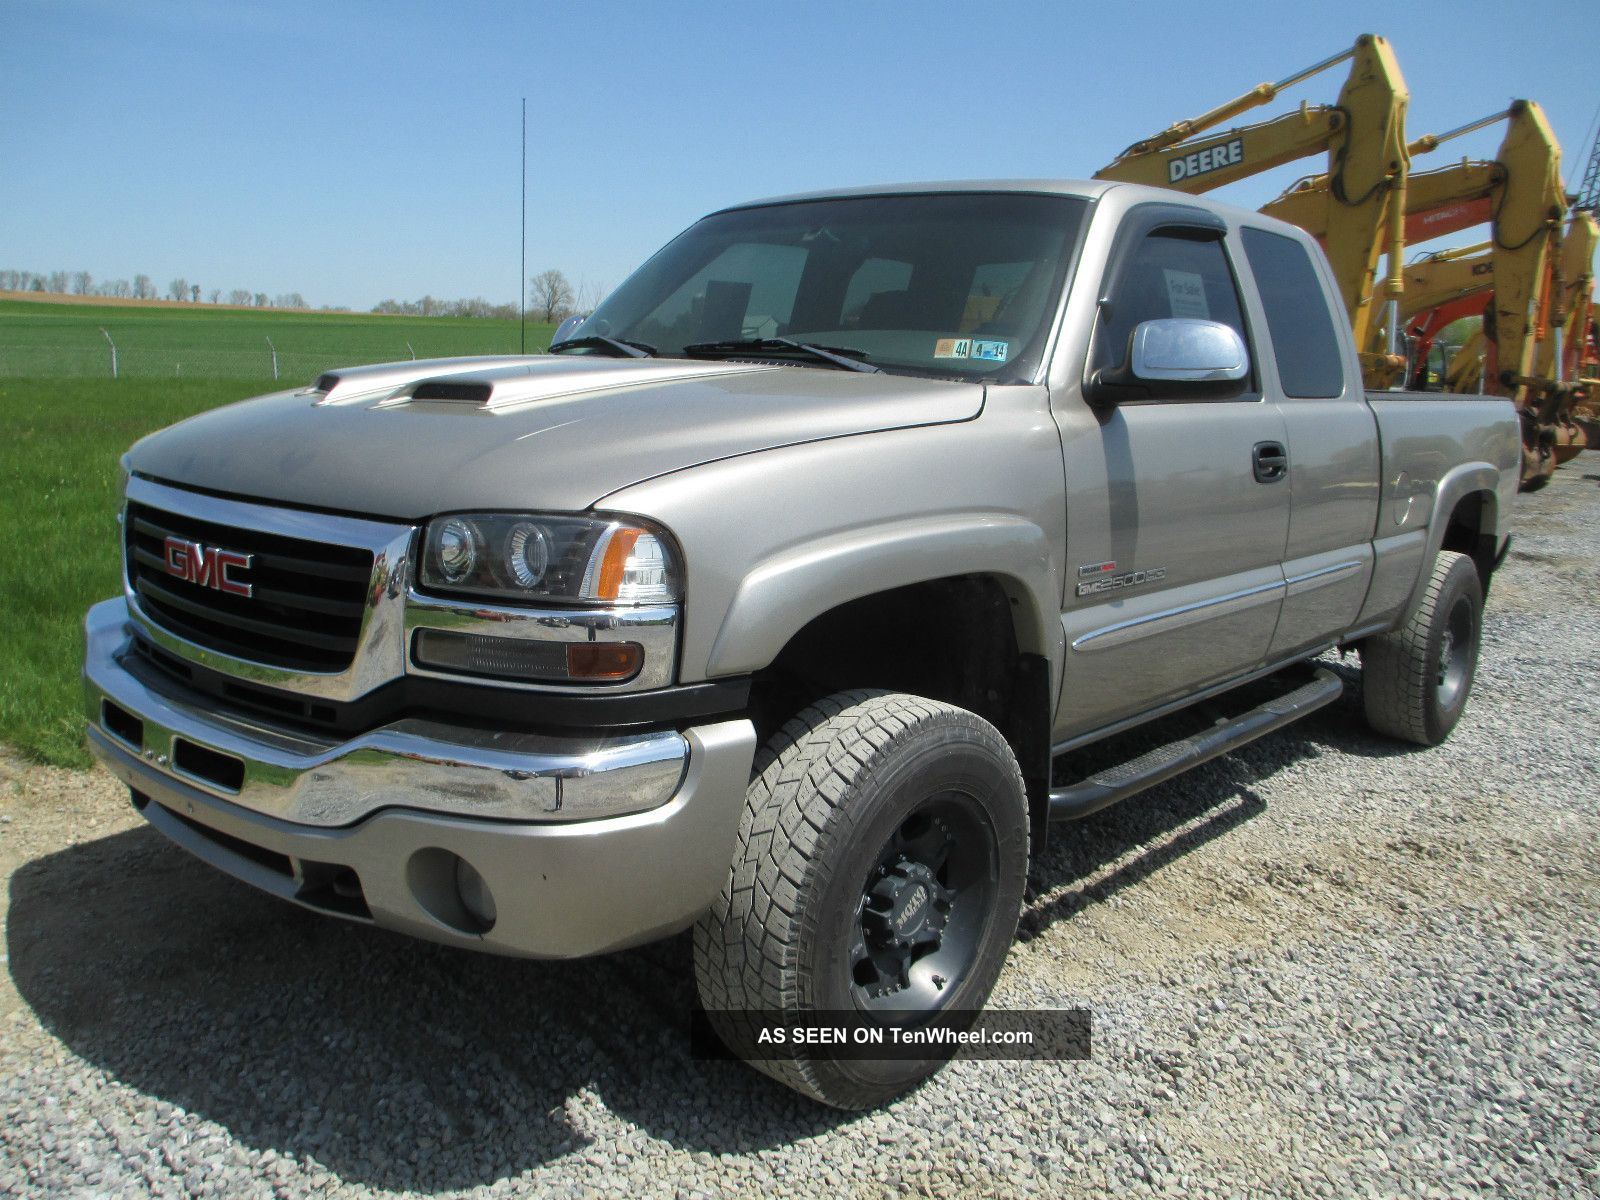 2003 Gmc Sierra 2500hd,  Duramax Turbo Diesel,  Extended Cab,  4 - Door,  4x4, Sierra 2500 photo